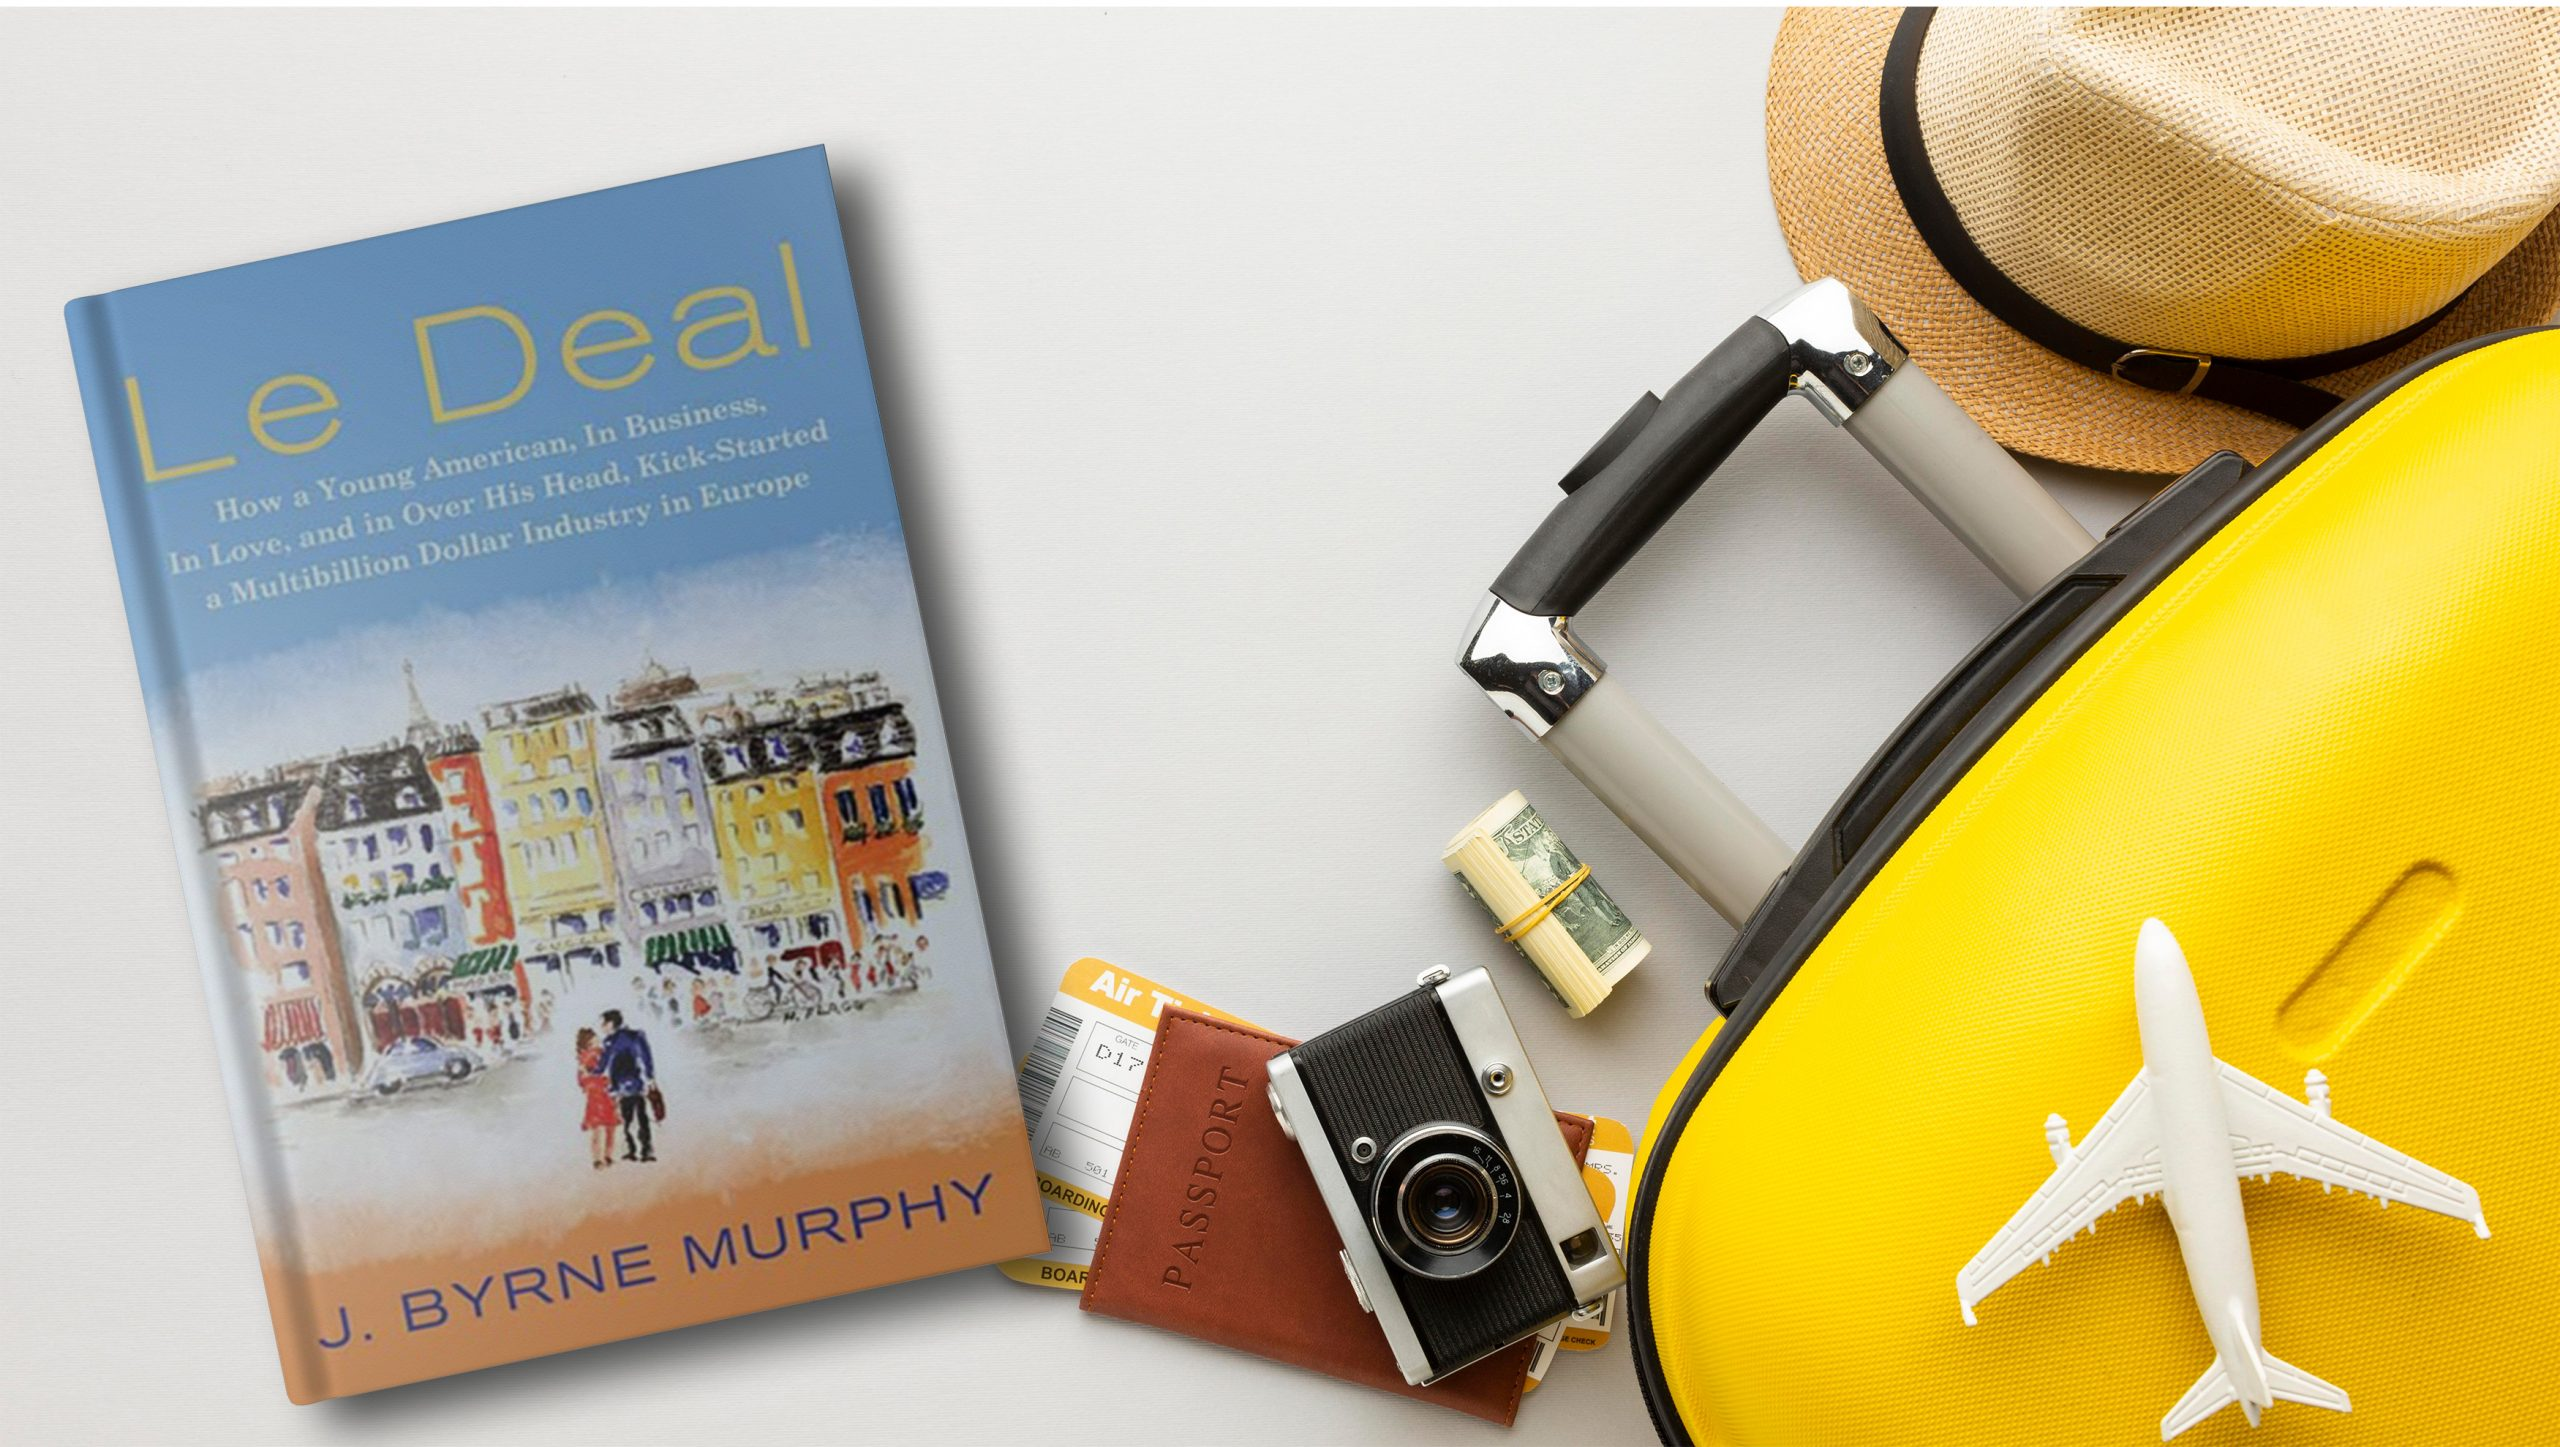 Book Review - Le Deal by J Byrne Murphy